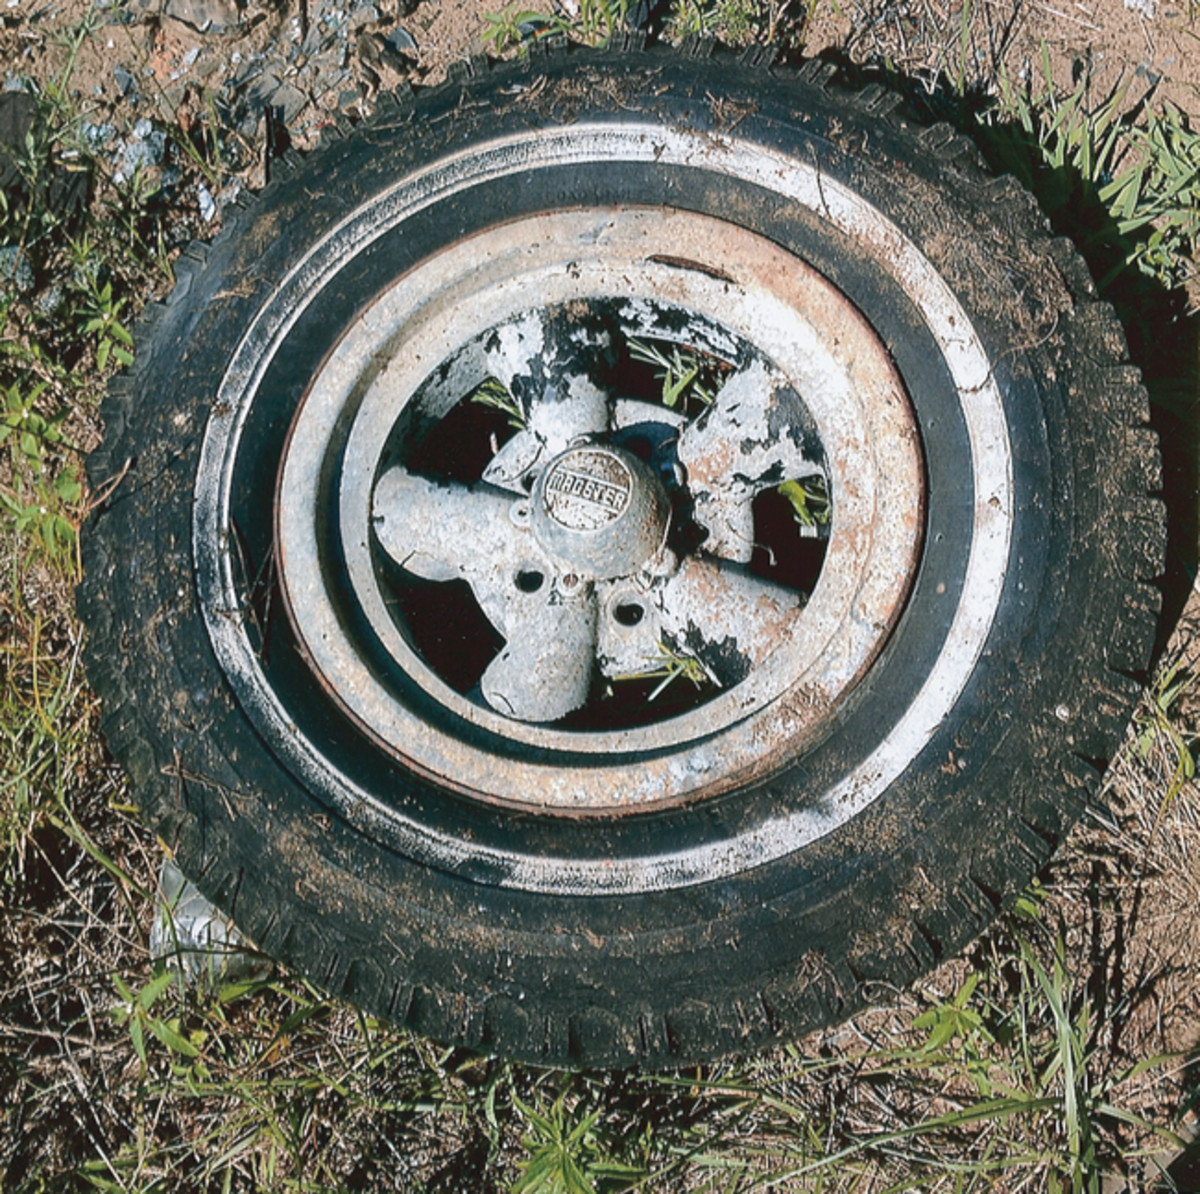 Throughout Golden Sands Salvage lying randomly or packed into vintage cargo vans or dilapidated mobile homes are interesting parts such as this vintage Magster wheel.